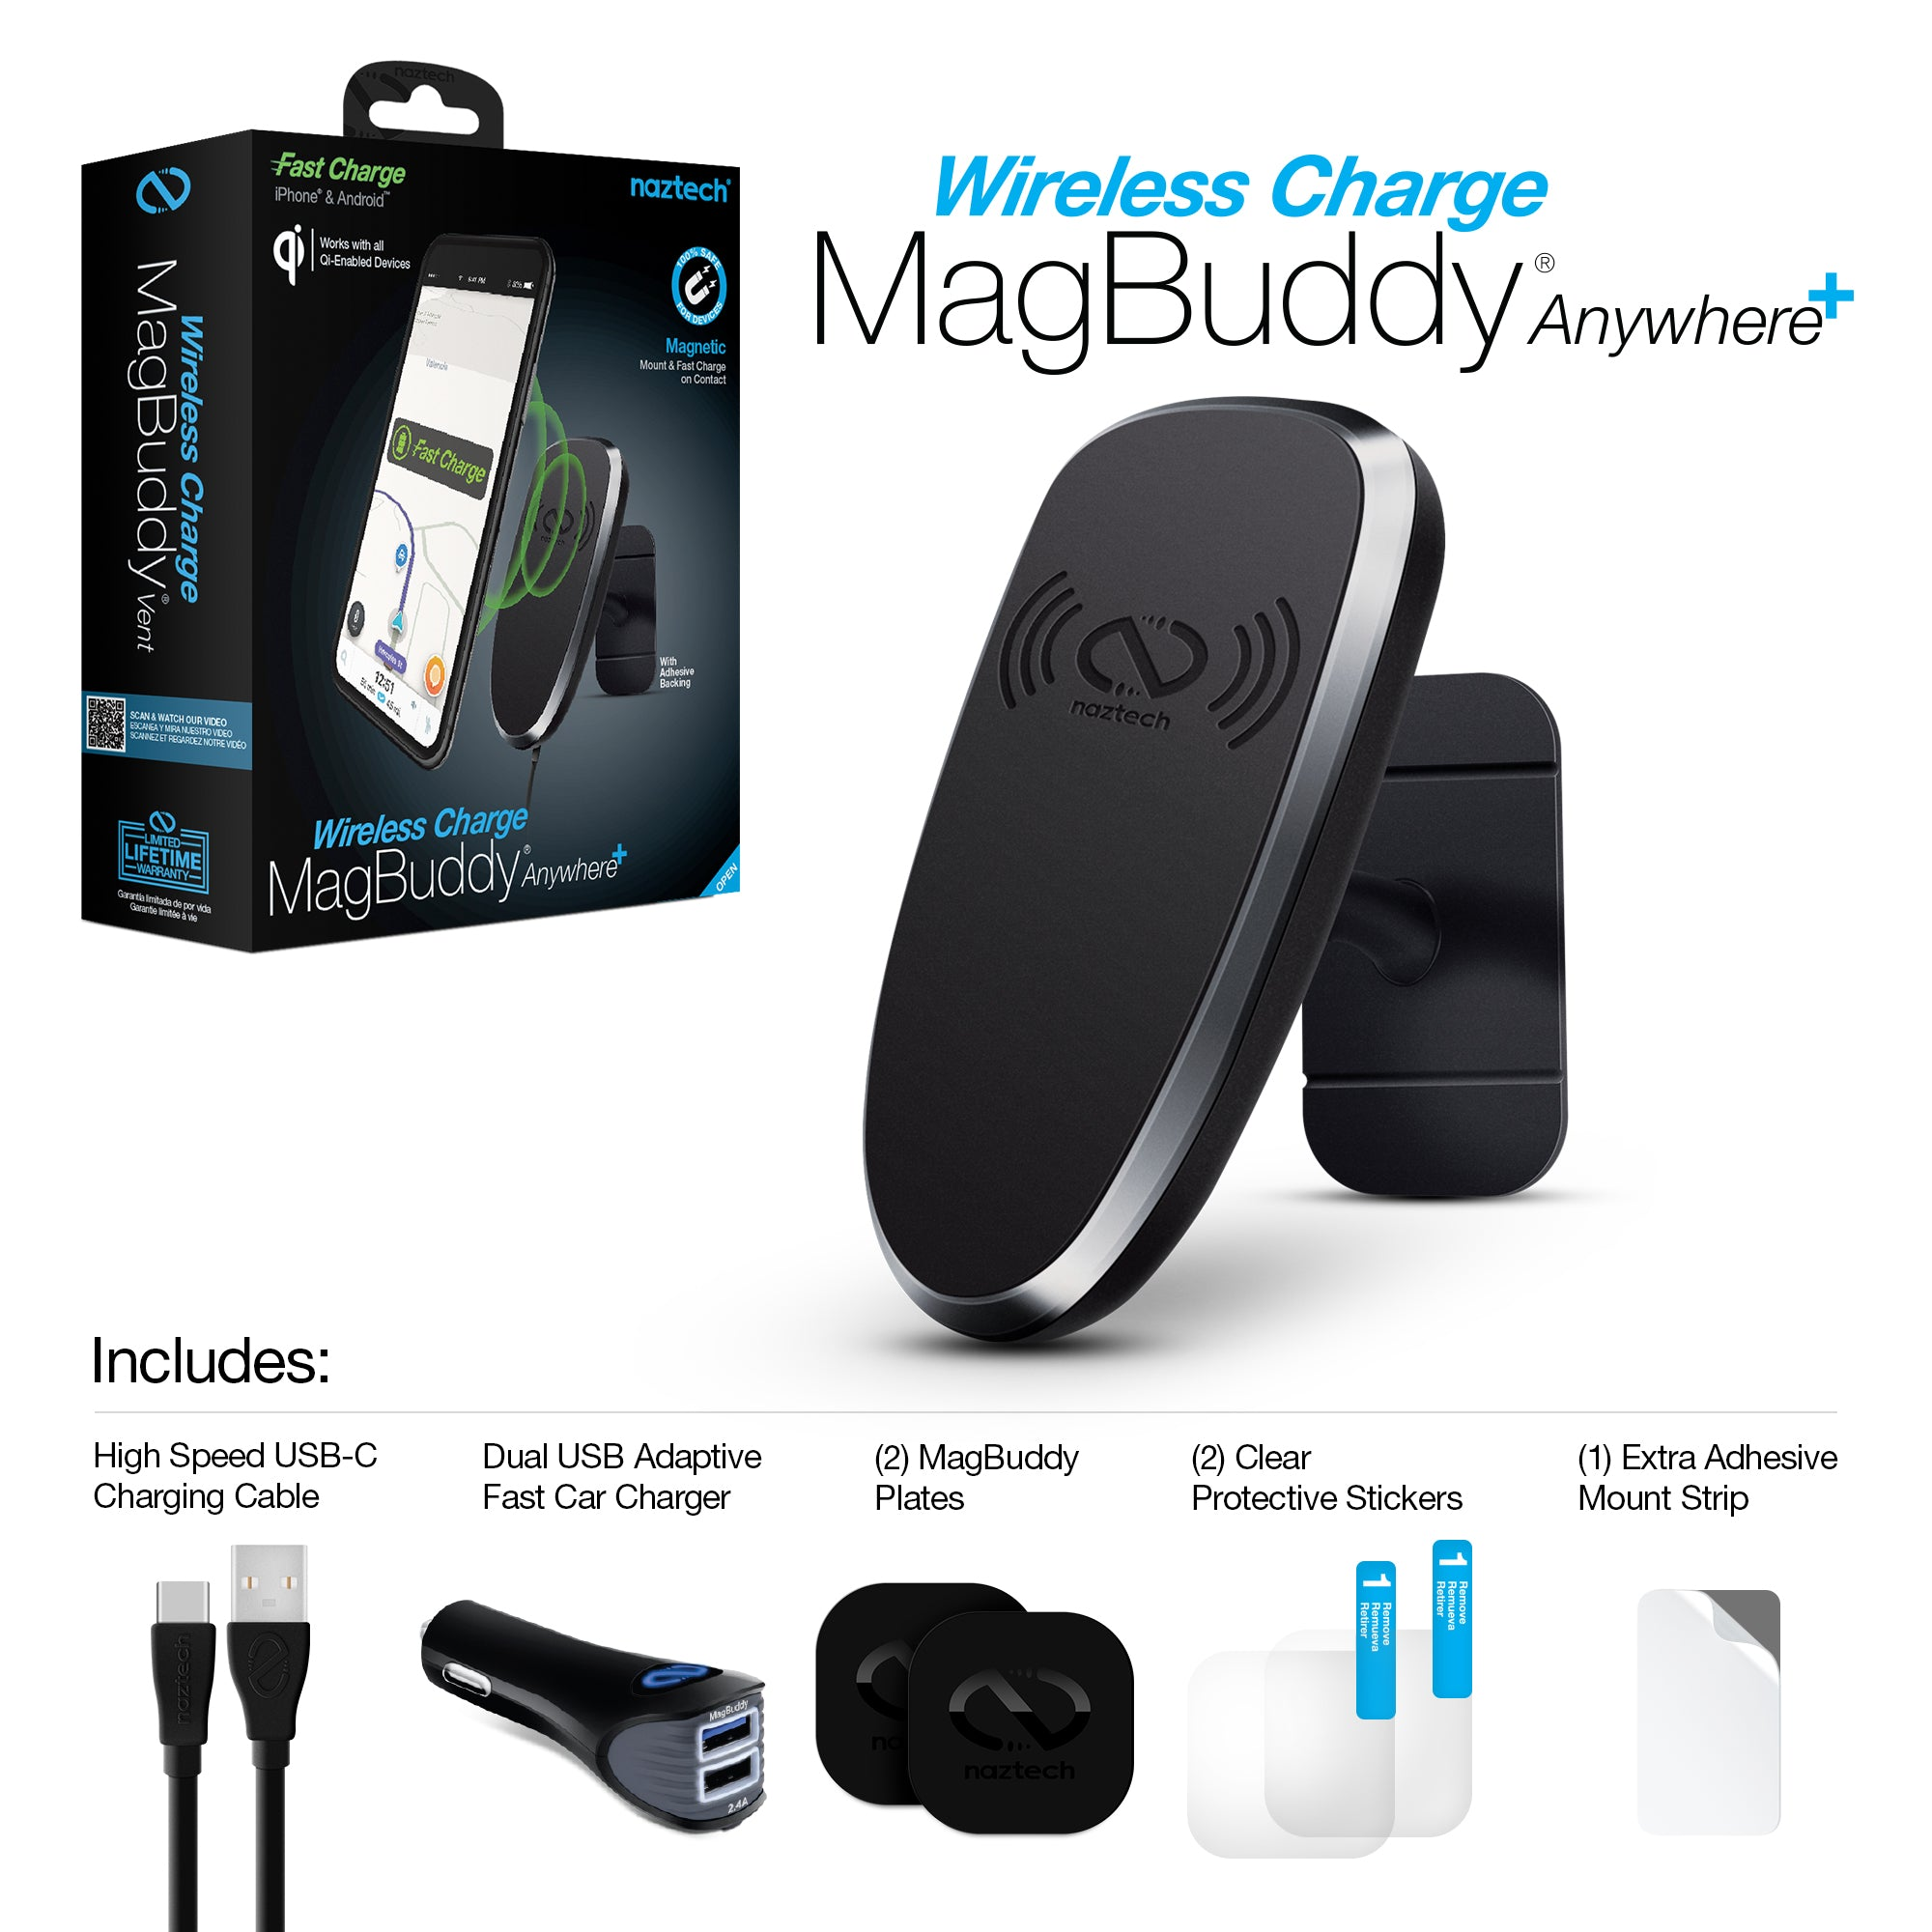 MagBuddy Wireless Charge Anywhere+ Mount